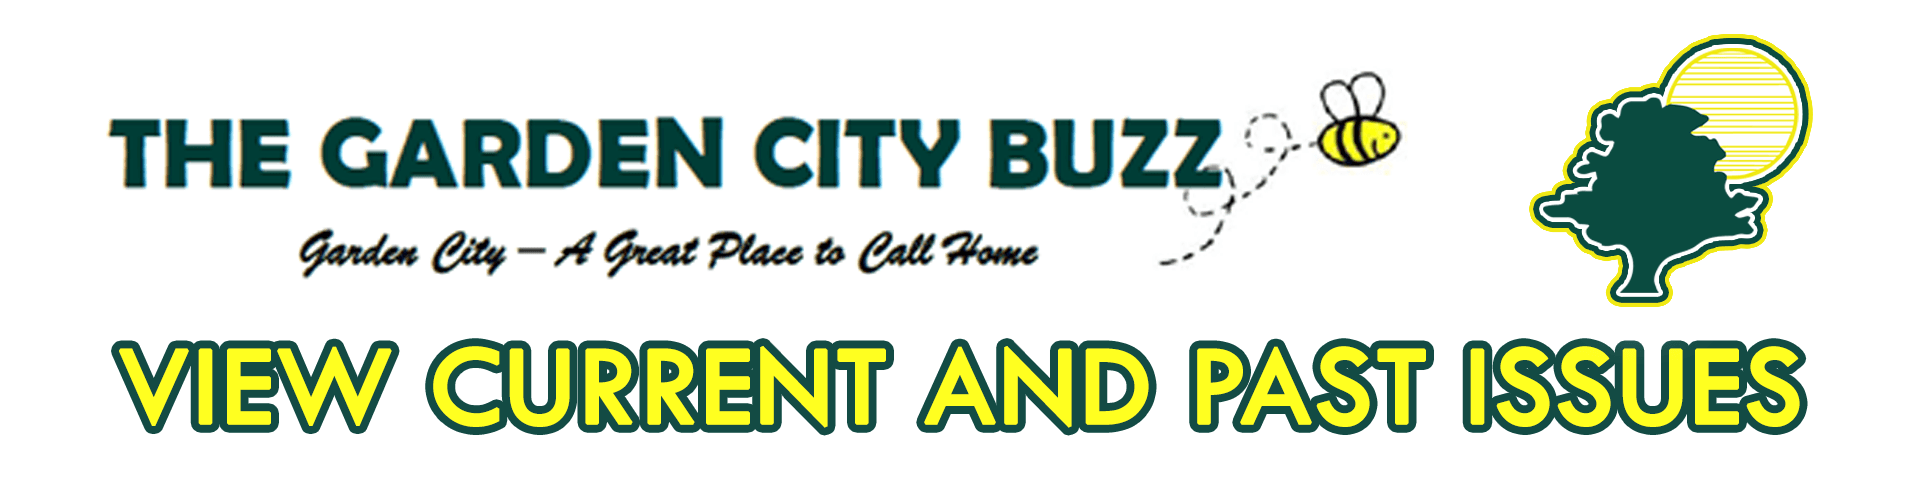 Garden City Buzz Button